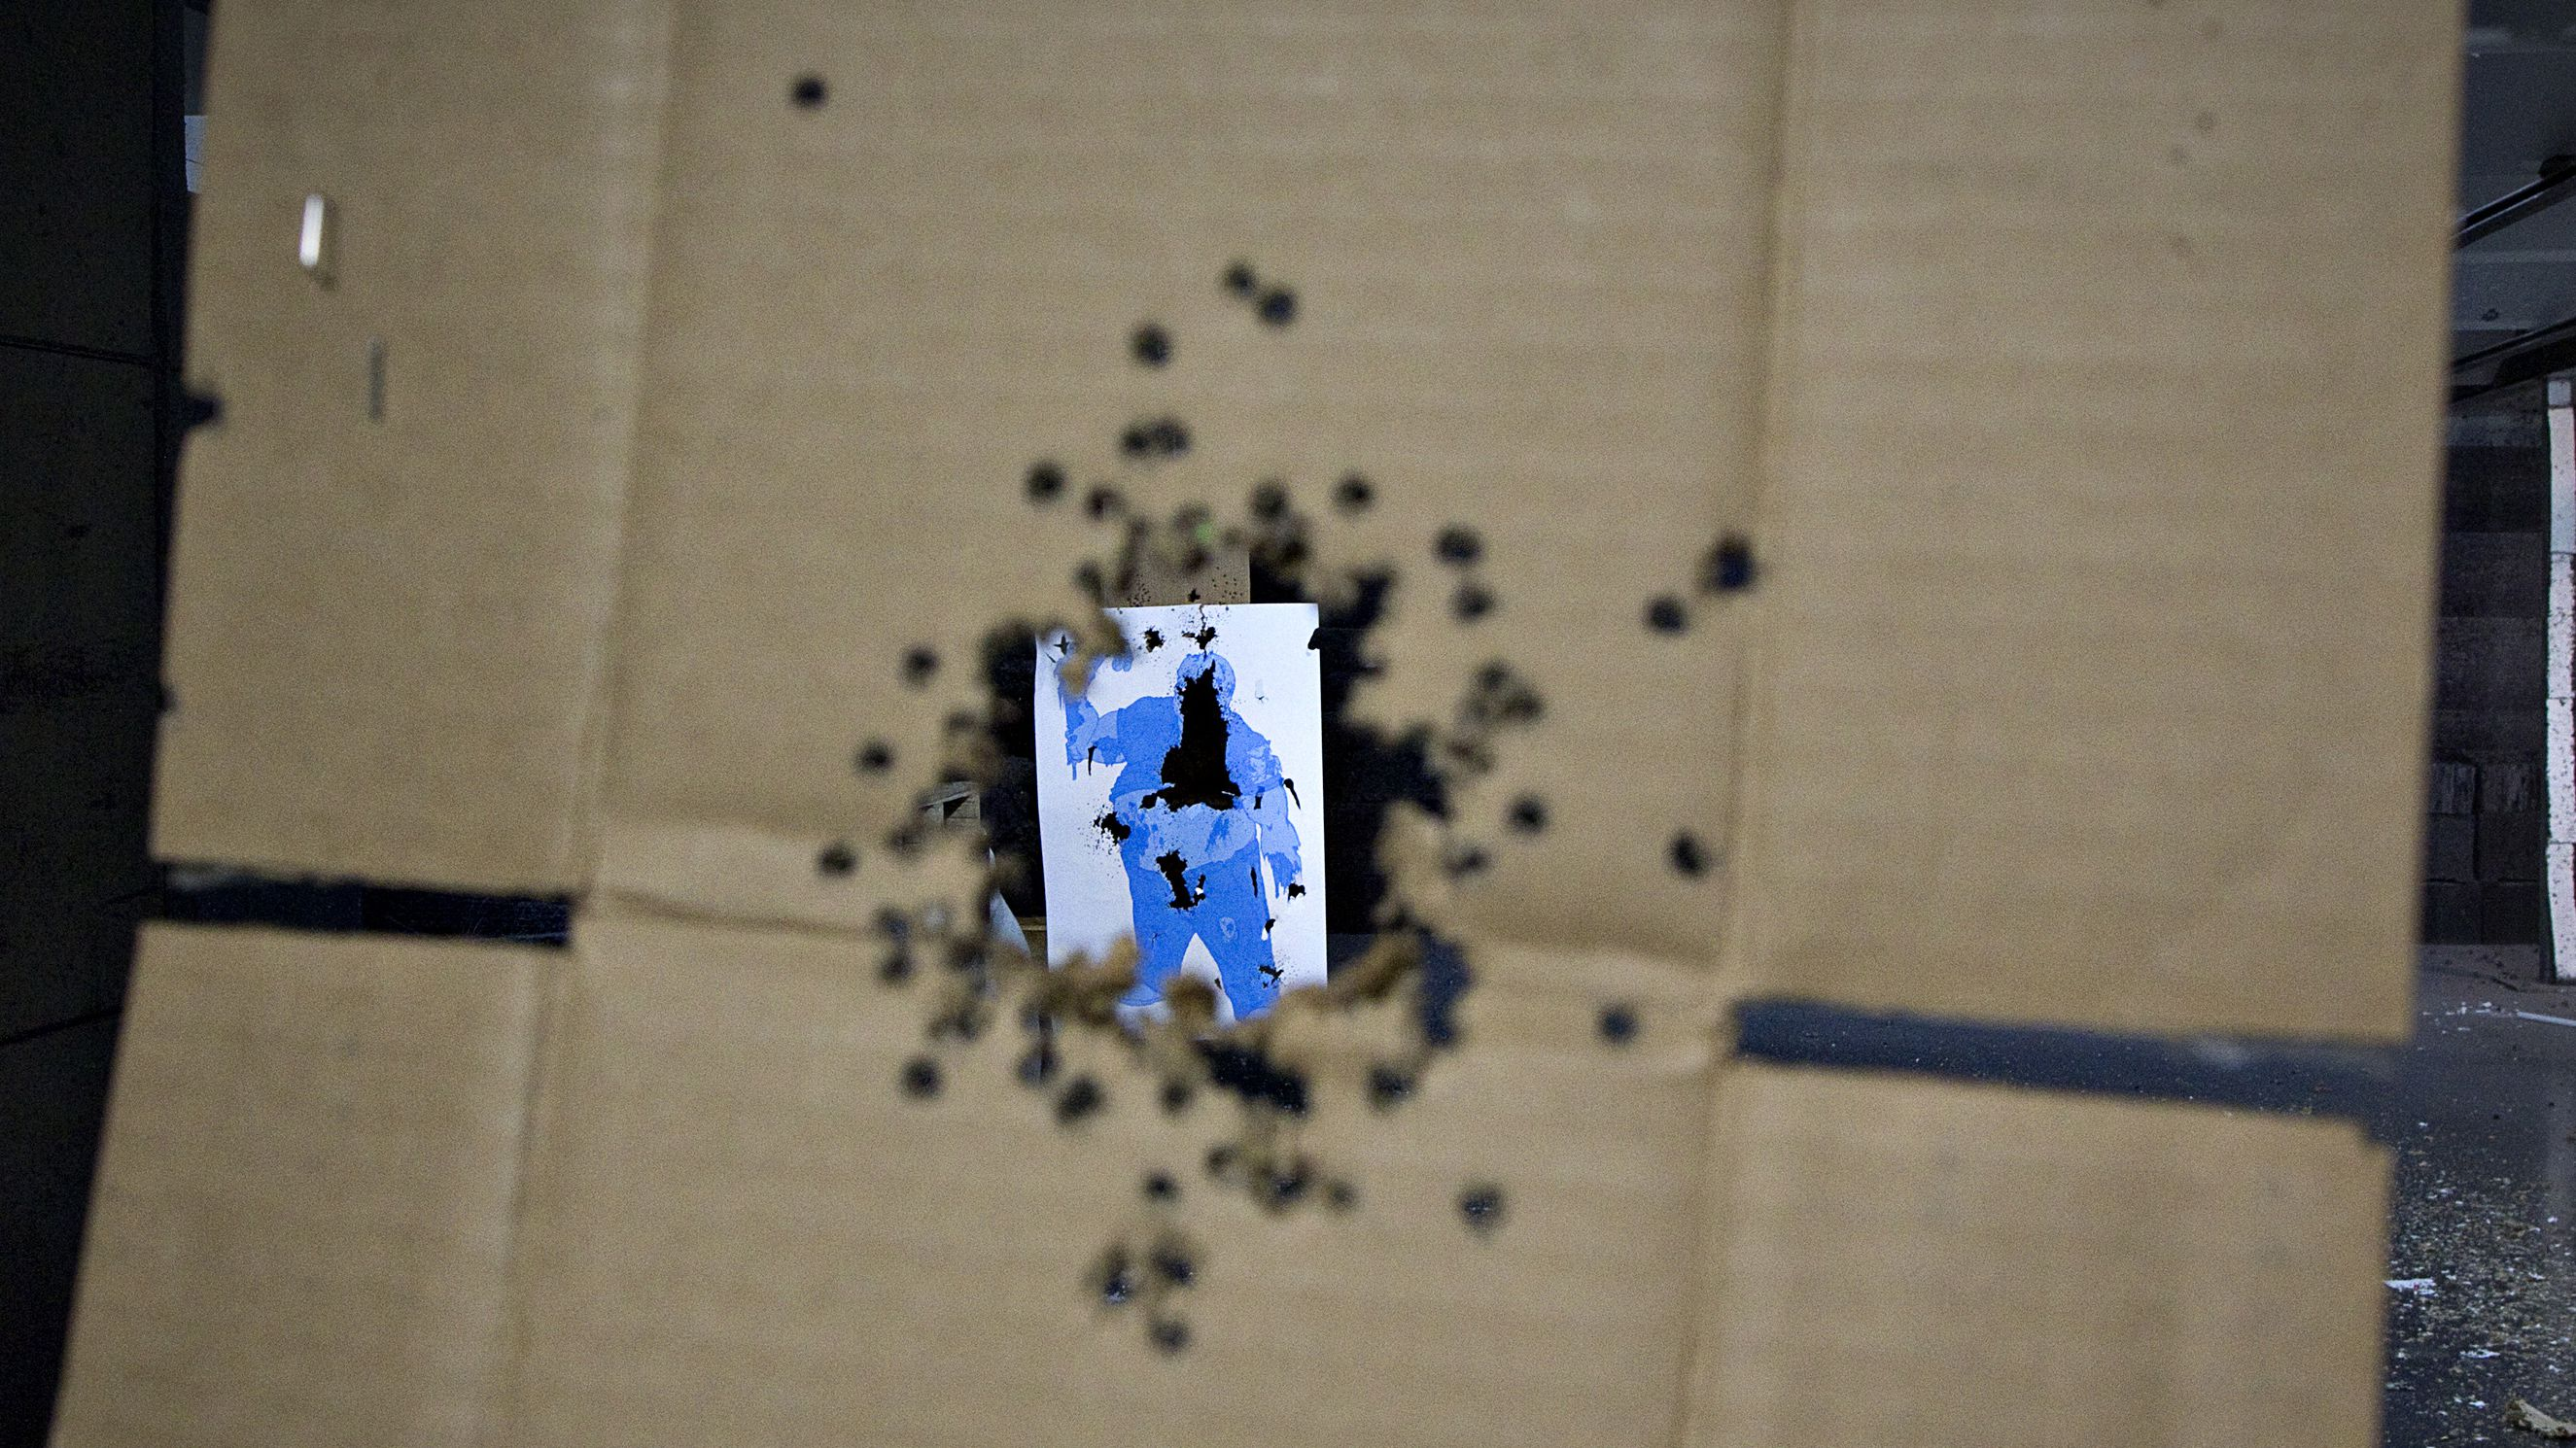 nien year old girl shot killed shoot mohave arizona uzi automatic machine gun accidental death firing shooting range parents supervision law gun A target hit several times is seen through a piece of cardboard also peppered with bullet holes at the DVC Indoor Shooting Centre in Port Coquitlam, British Columbia March 22, 2013. The range has large membership though the general public is also welcome. REUTERS/Andy Clark